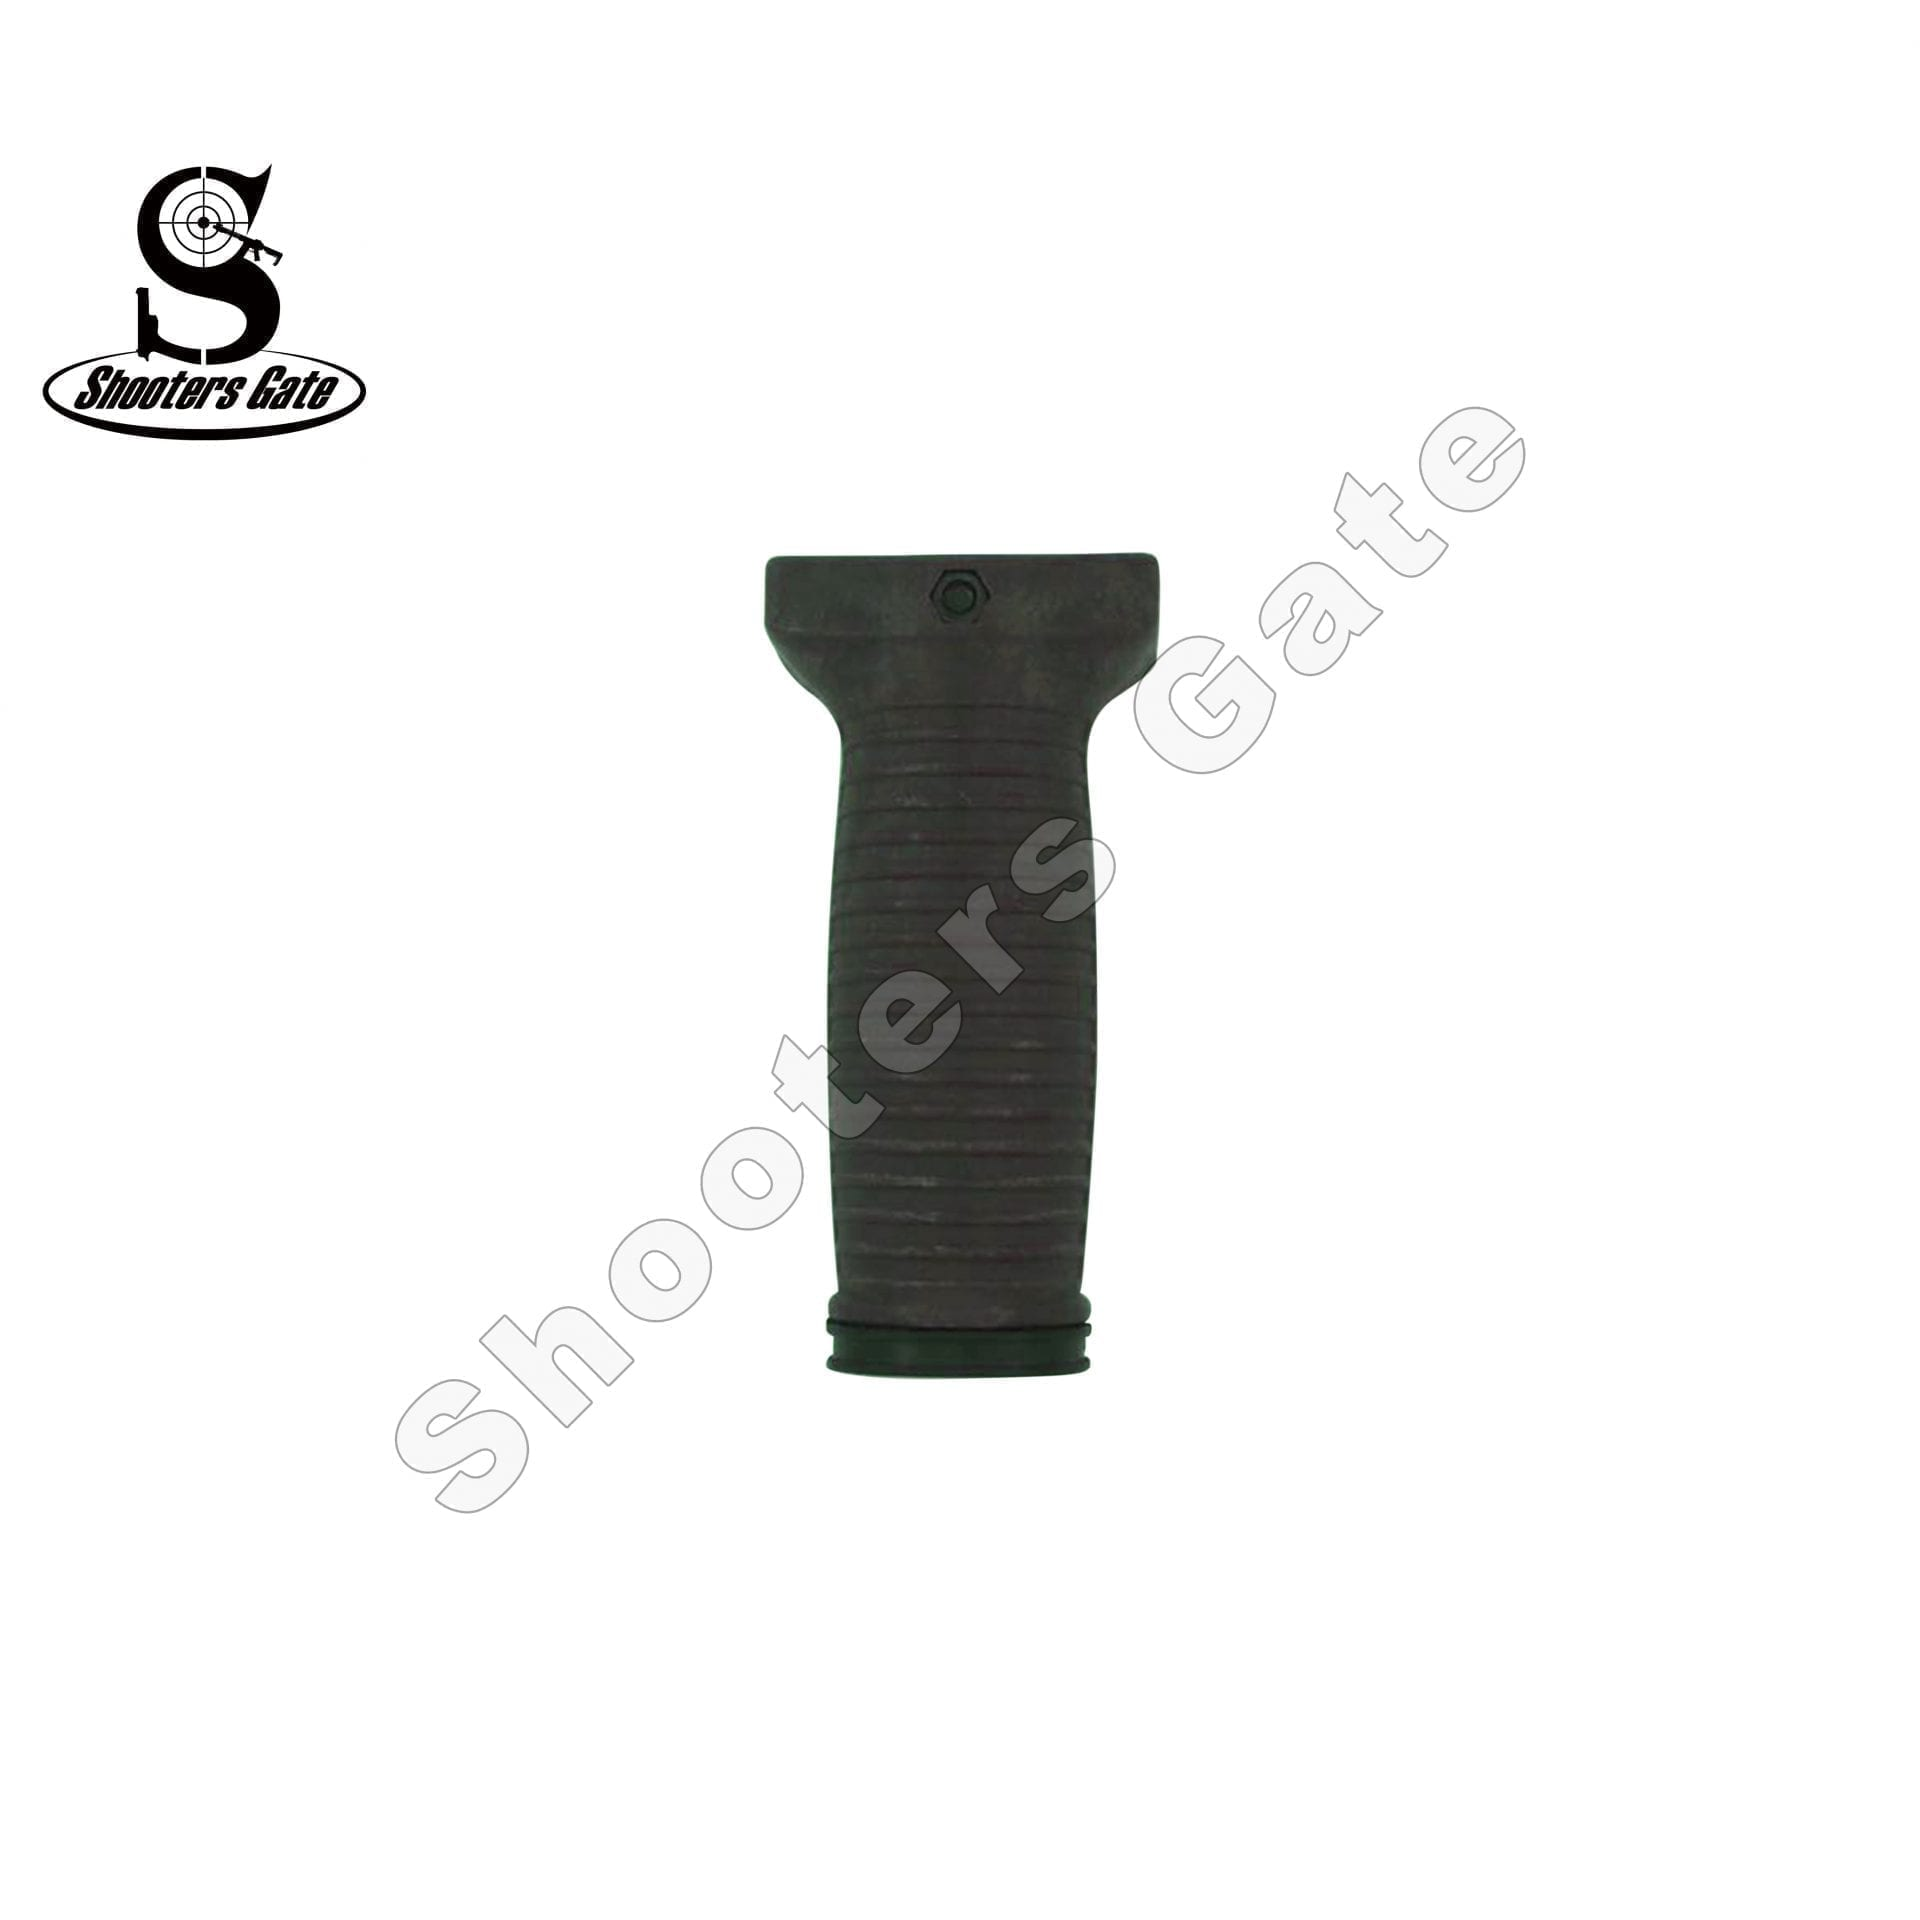 Vertical Rubberized Foregrip Long OD Green